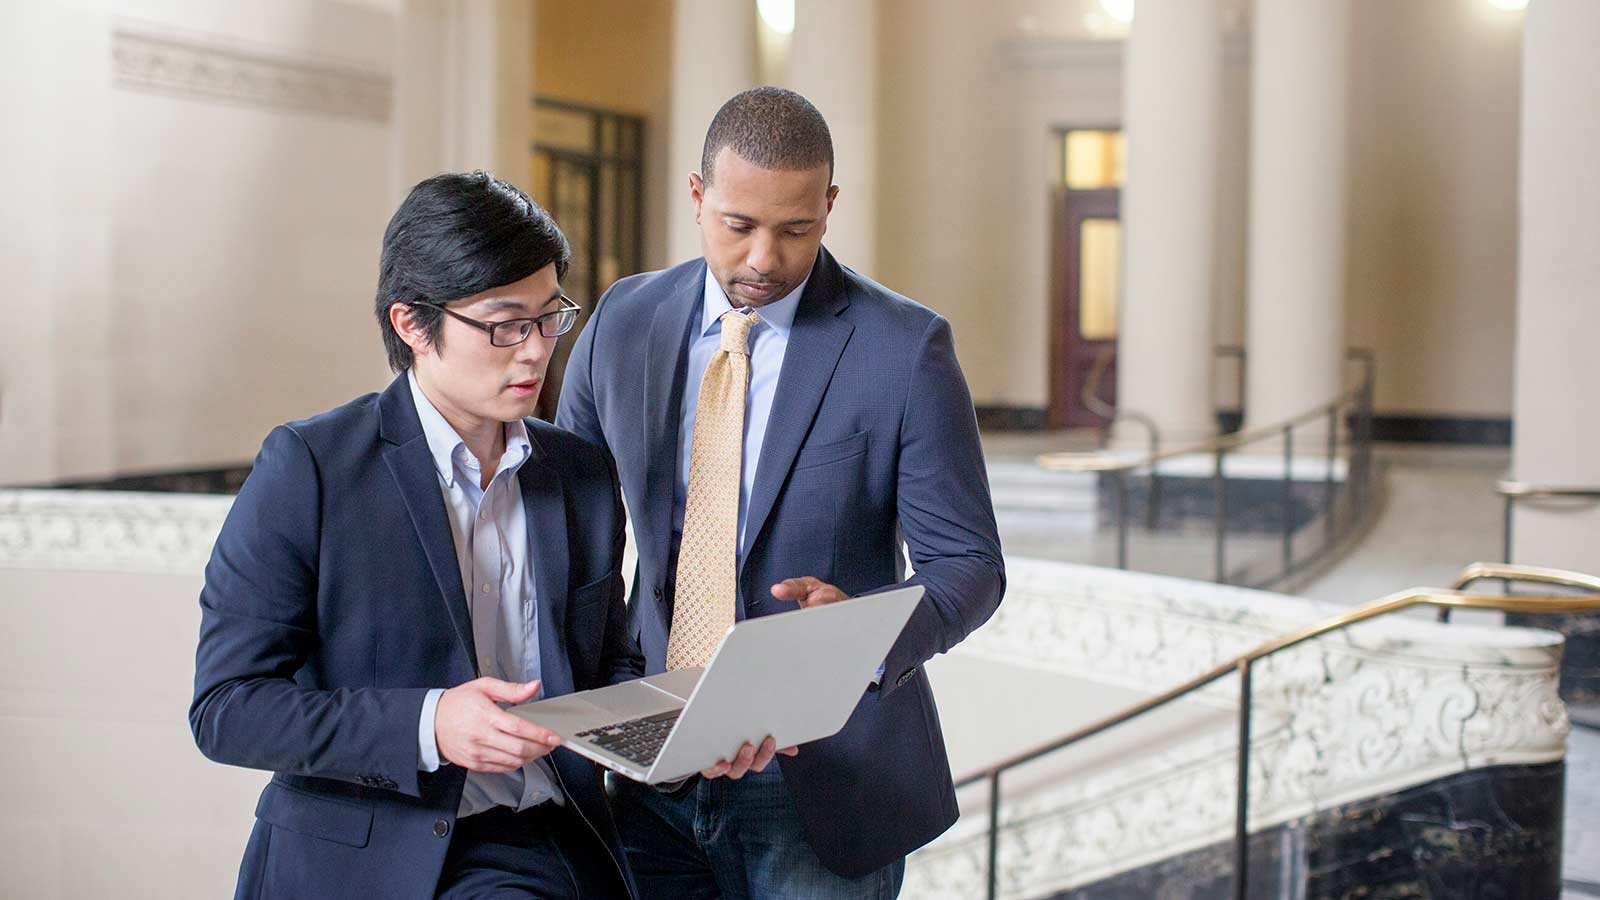 Two business men standing and conversing while looking at a laptop.